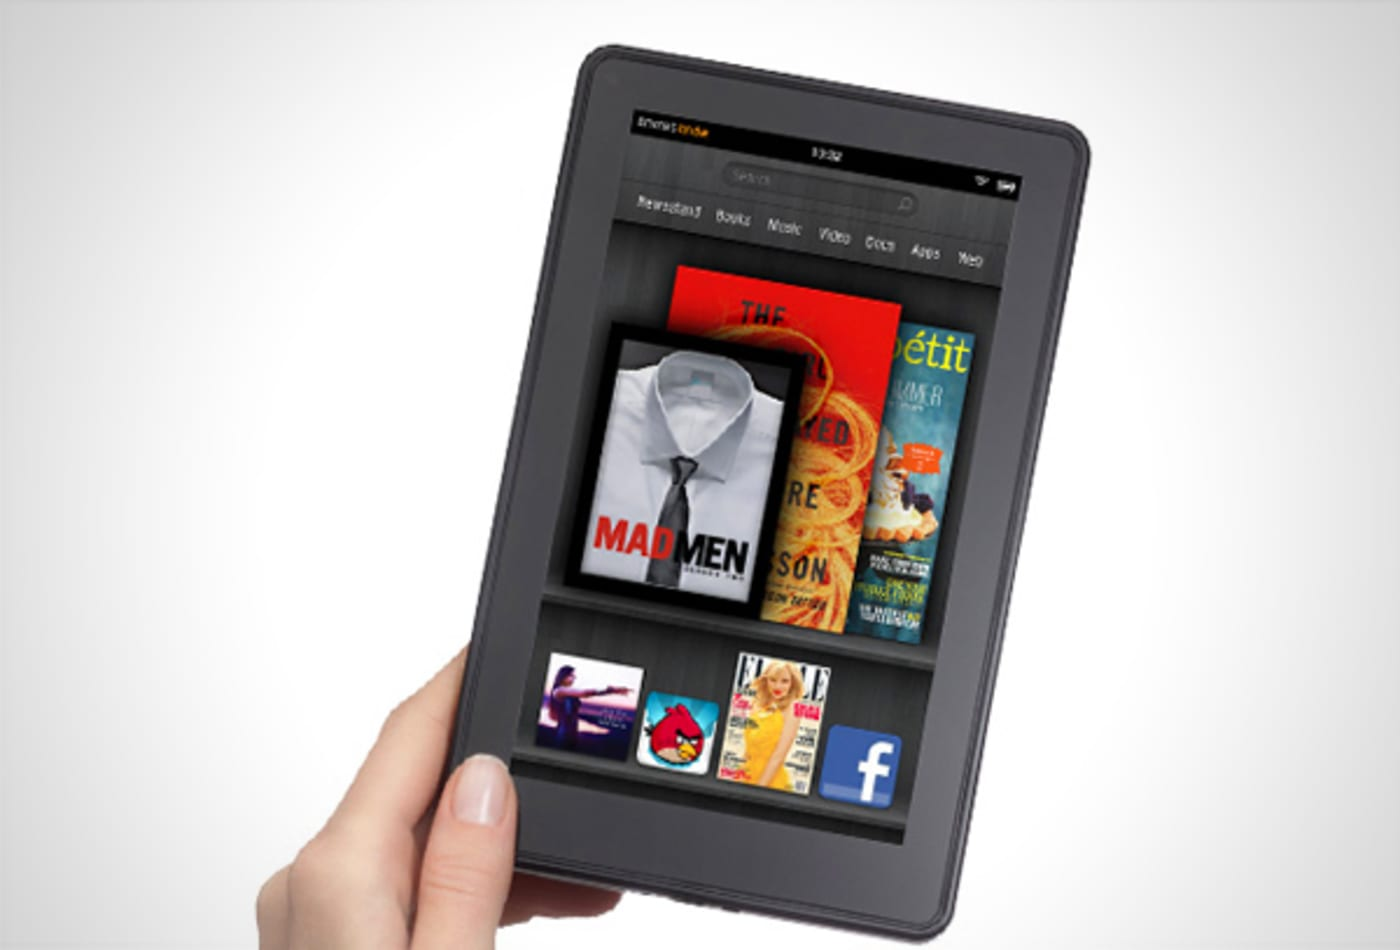 Kindle-Inventions-Killed-Businesses-SS.jpg